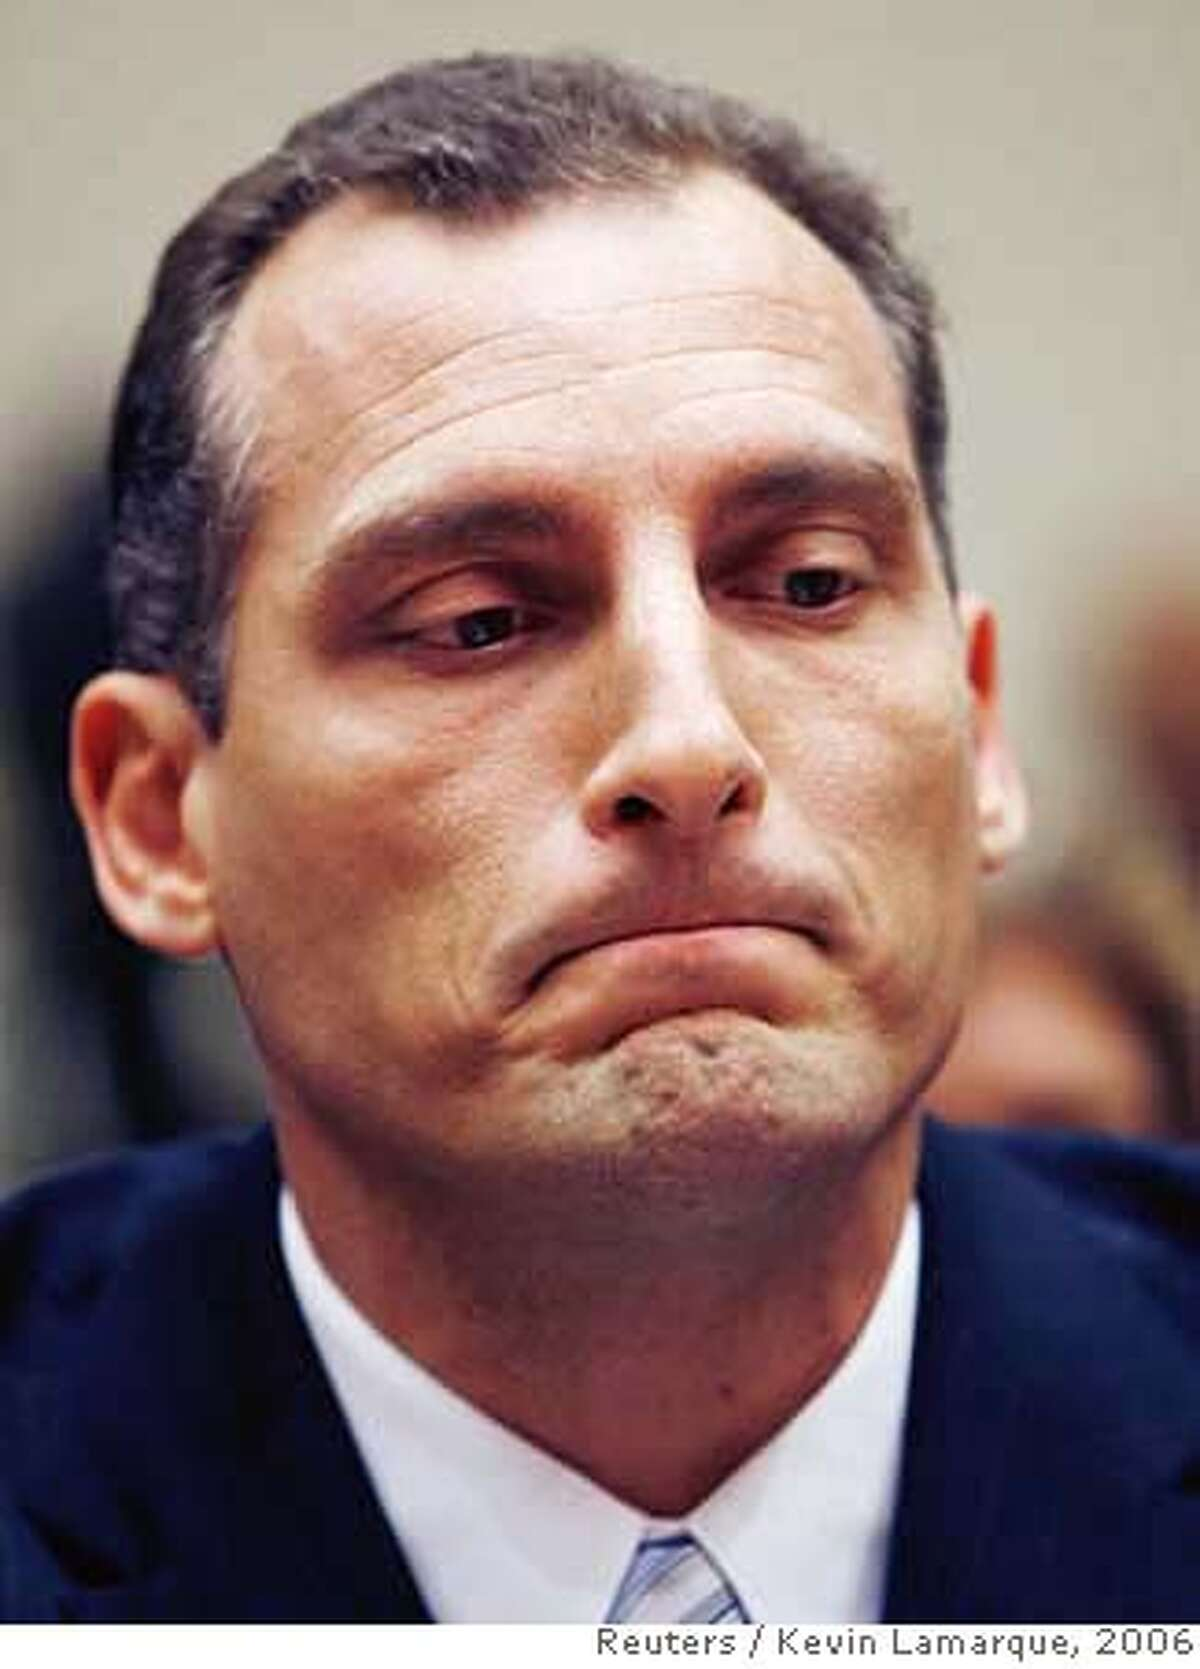 Kevin Hunsaker, senior legal counsel at Hewlett Packard, looks down as he pleads the 5th amendment rather than testify before the U.S. House Energy and Commerce Committee's Hewlett-Packard data privacy hearing on Capitol Hill in Washington September 28, 2006. REUTERS/Kevin Lamarque (UNITED STATES) Ran on: 10-01-2006 Kevin Hunsaker Ran on: 10-01-2006 0